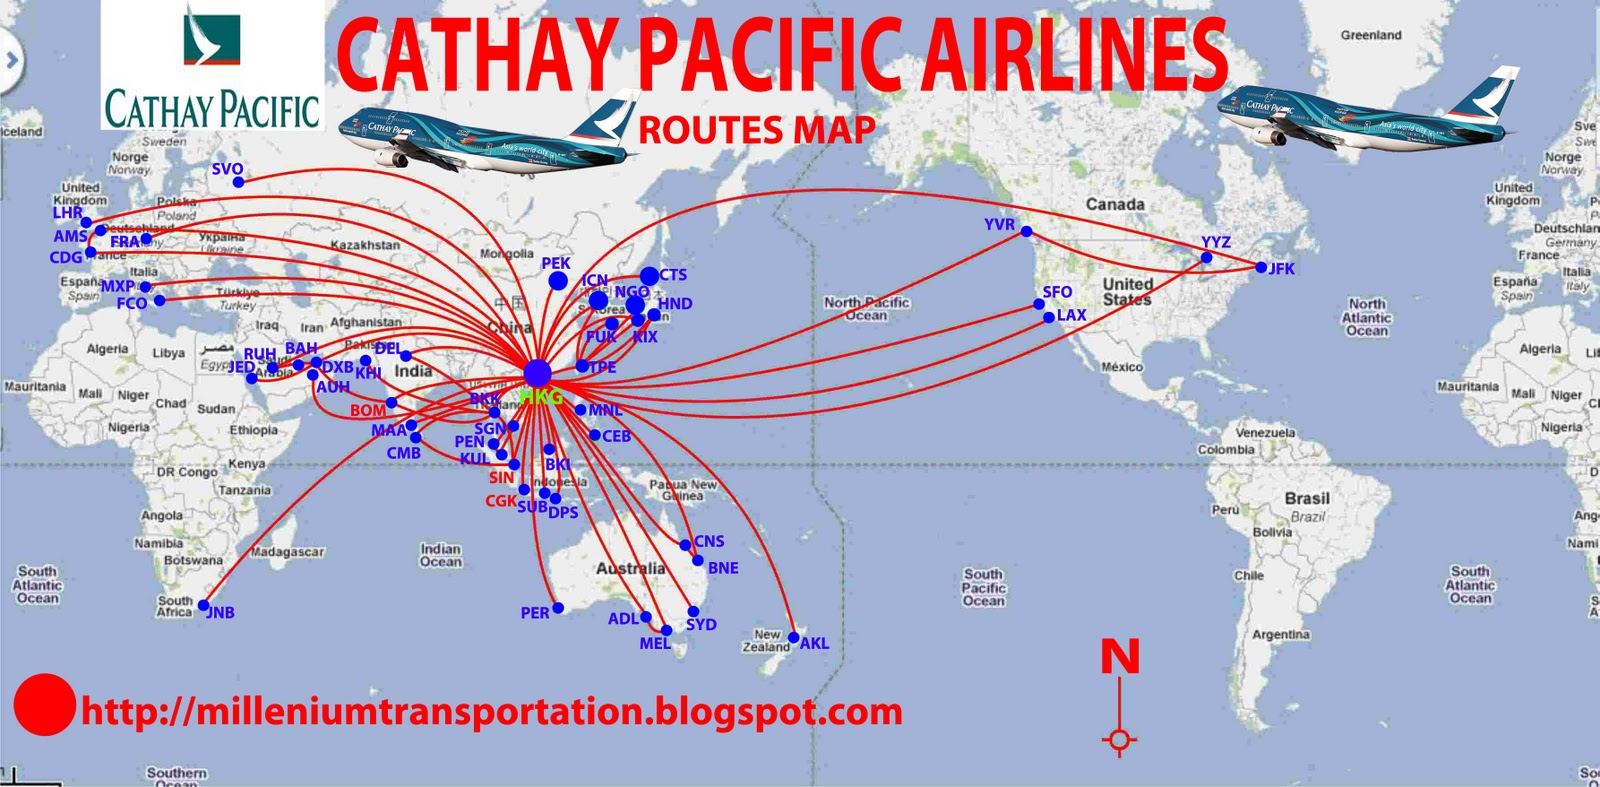 Routes map cathay pacific airways routes map cathay pacific airways routes map publicscrutiny Choice Image